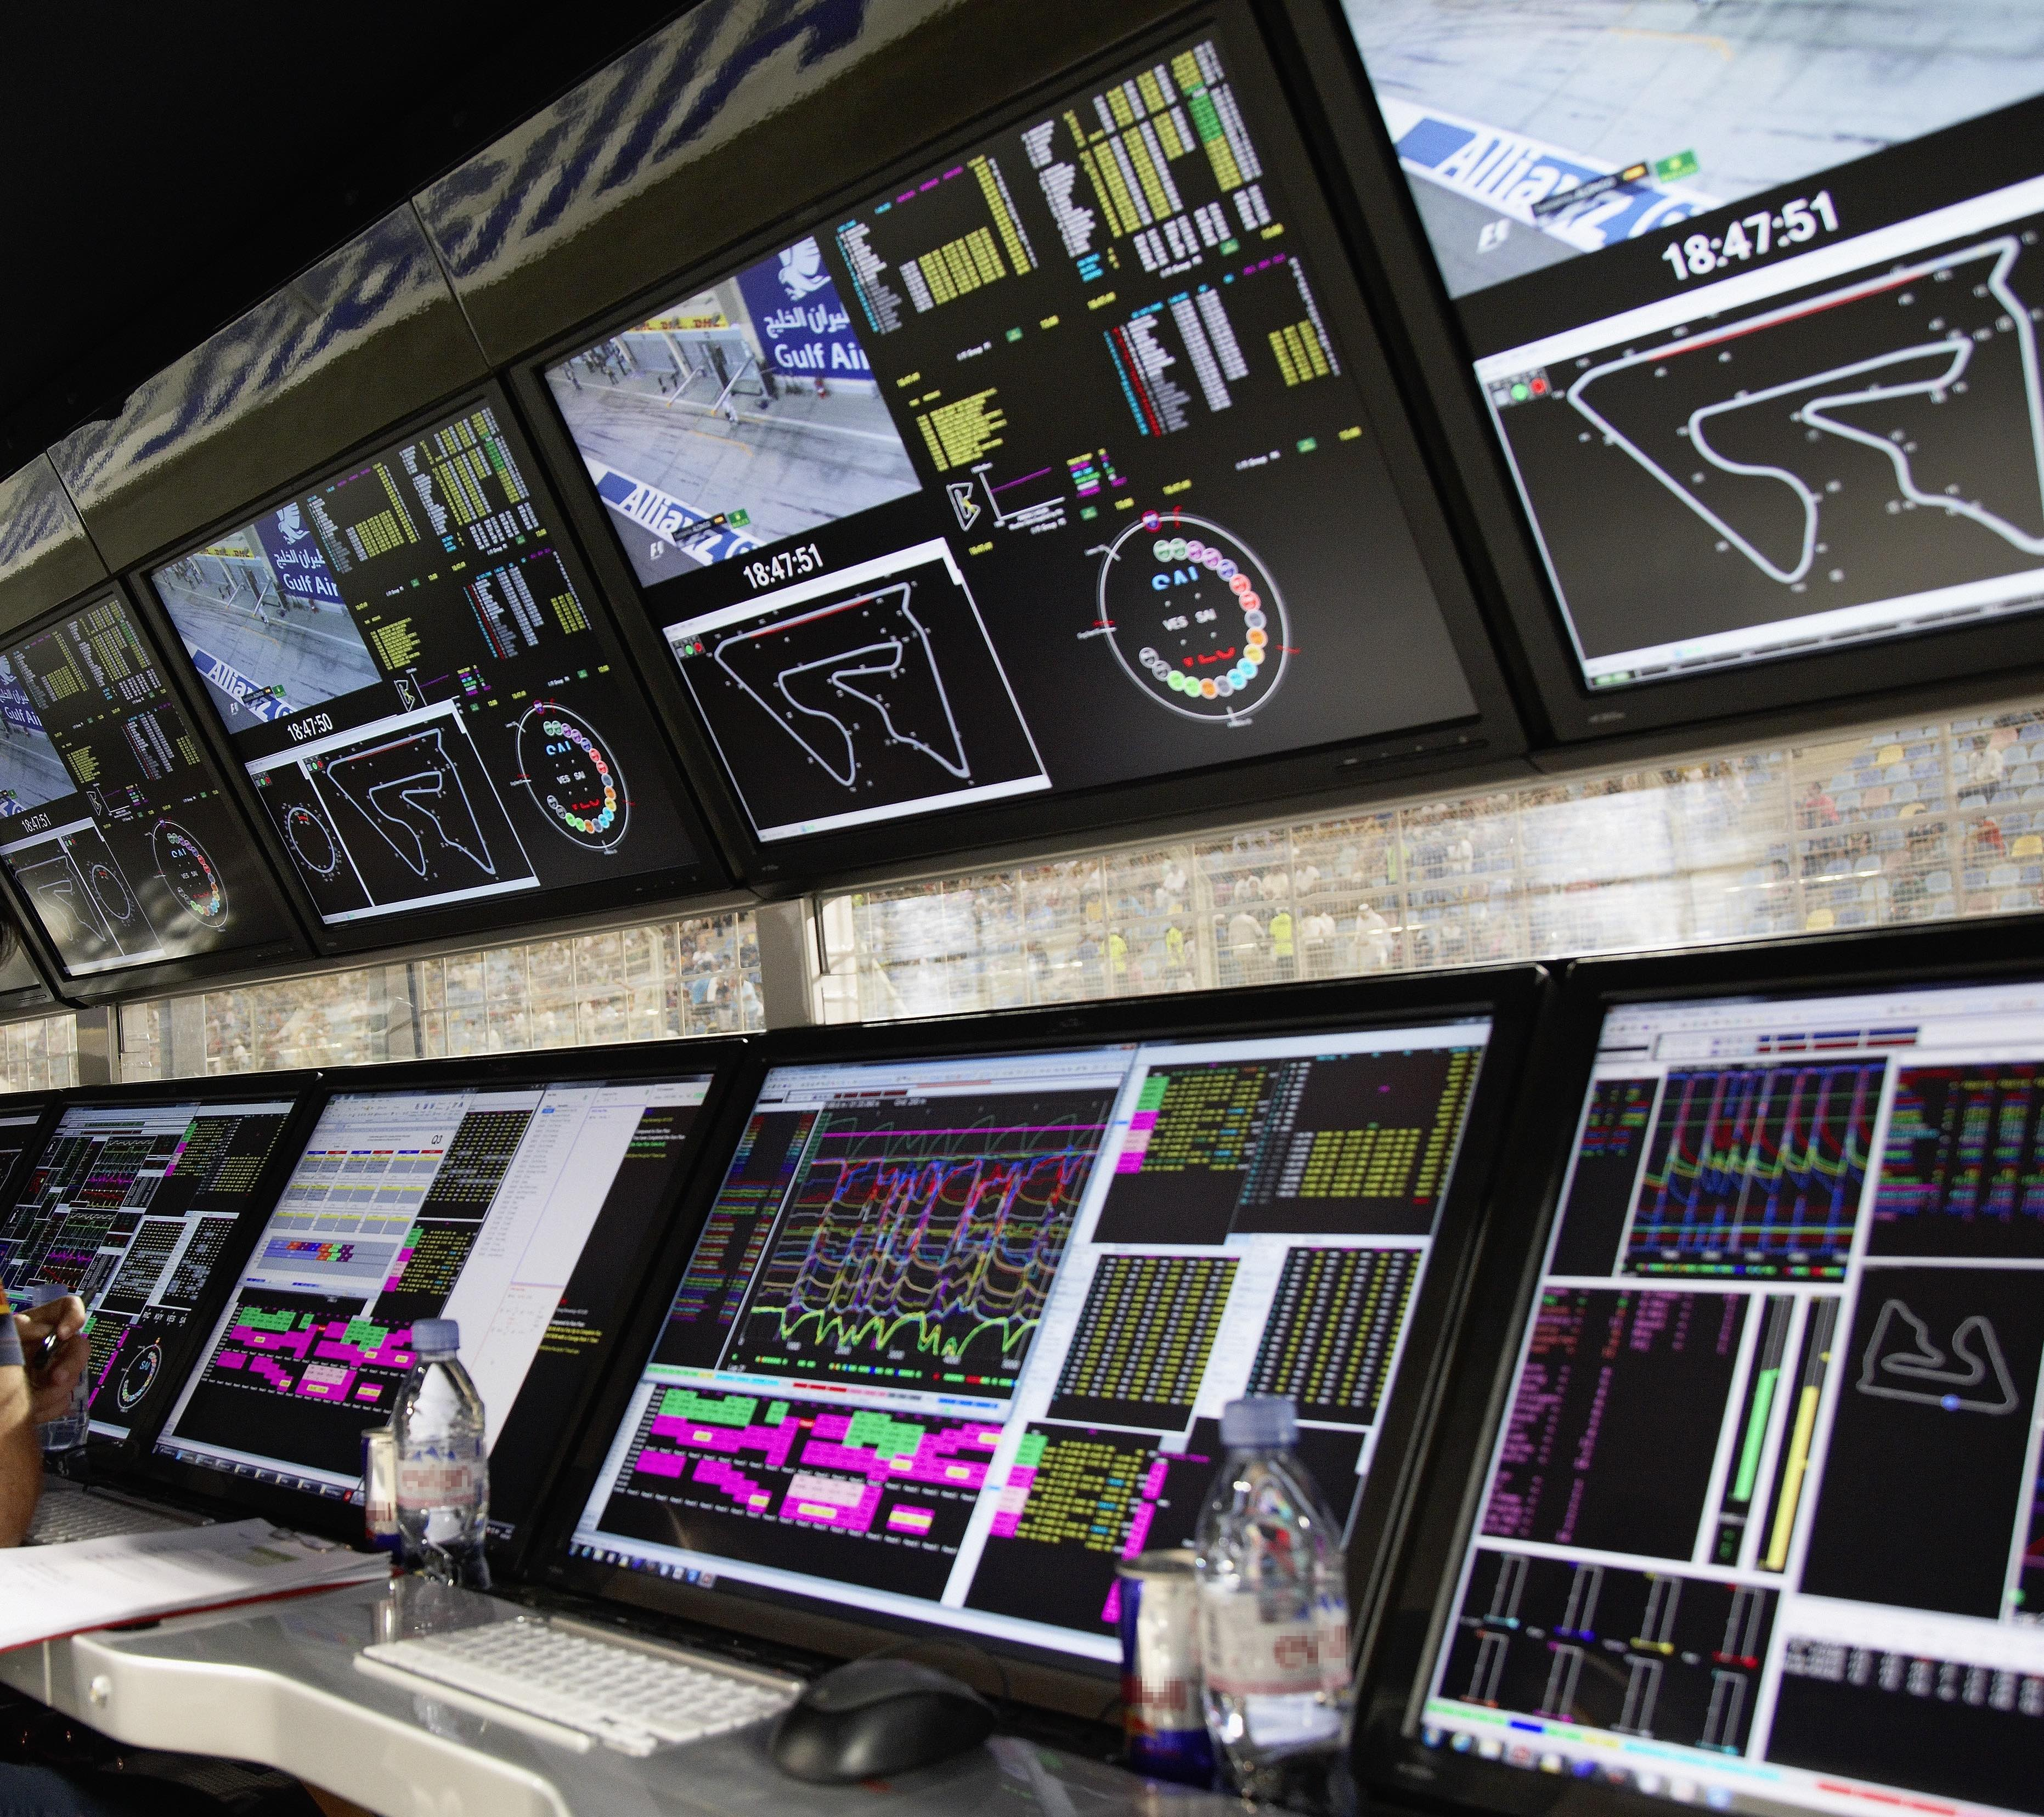 In Formula One The Wall is a high pressure environment but with insights from IronMan life becomes much easier.